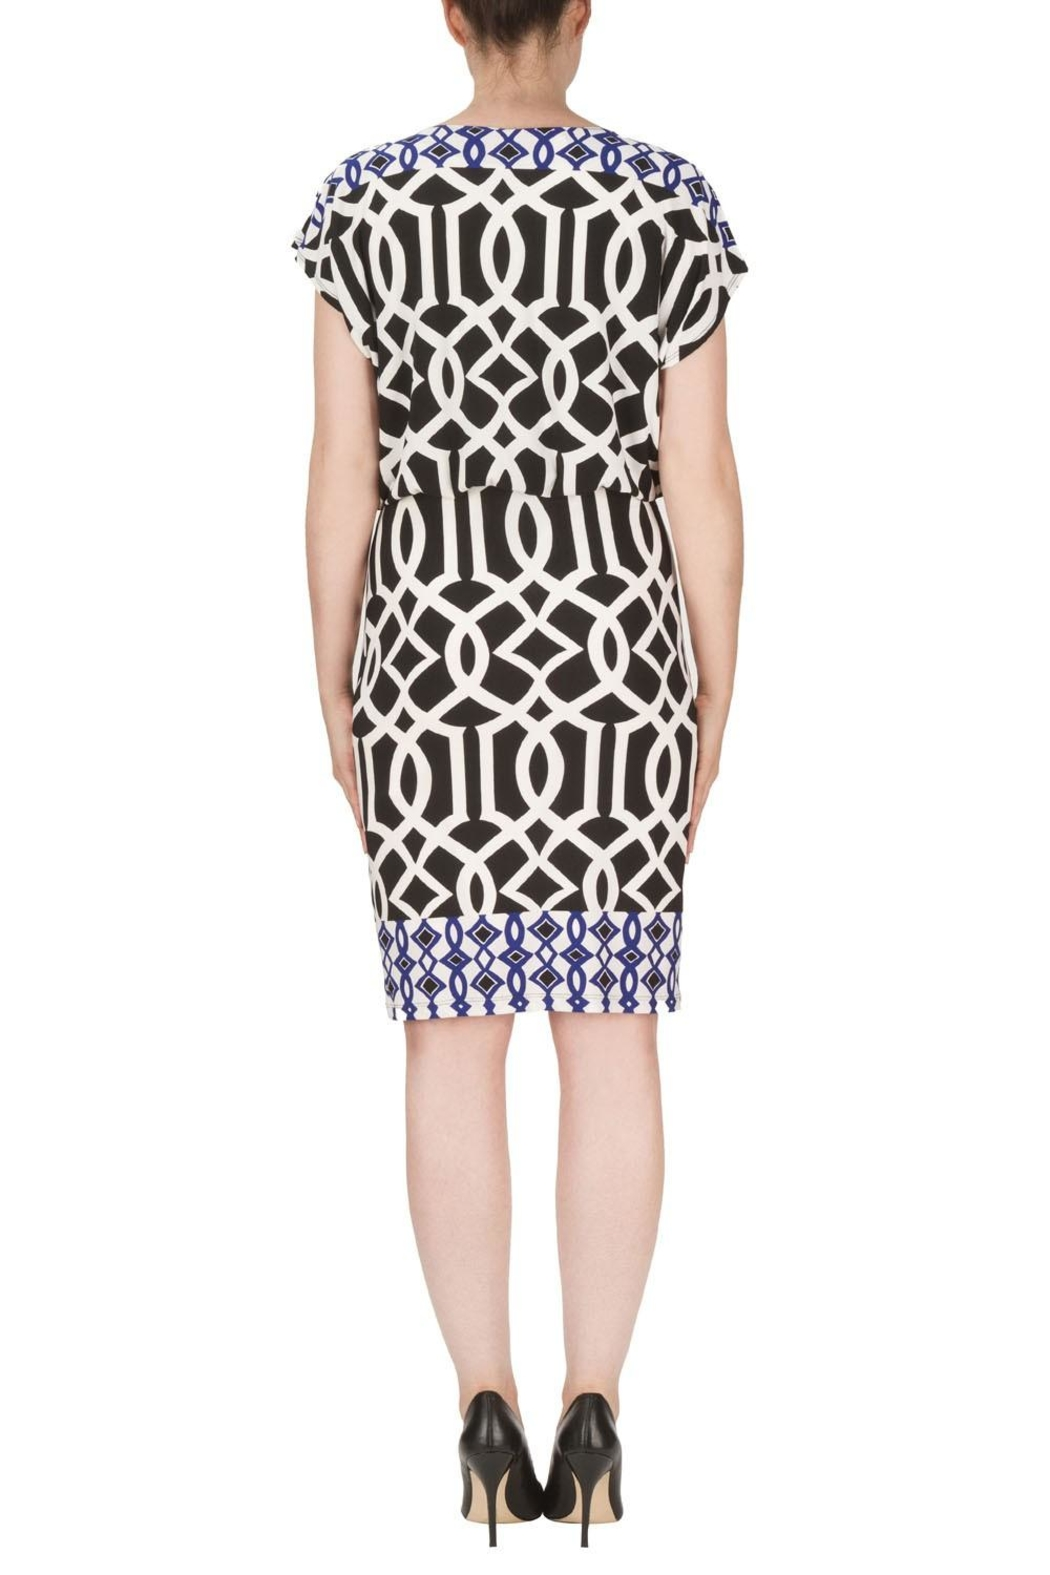 Joseph Ribkoff Bloused Dress - Side Cropped Image